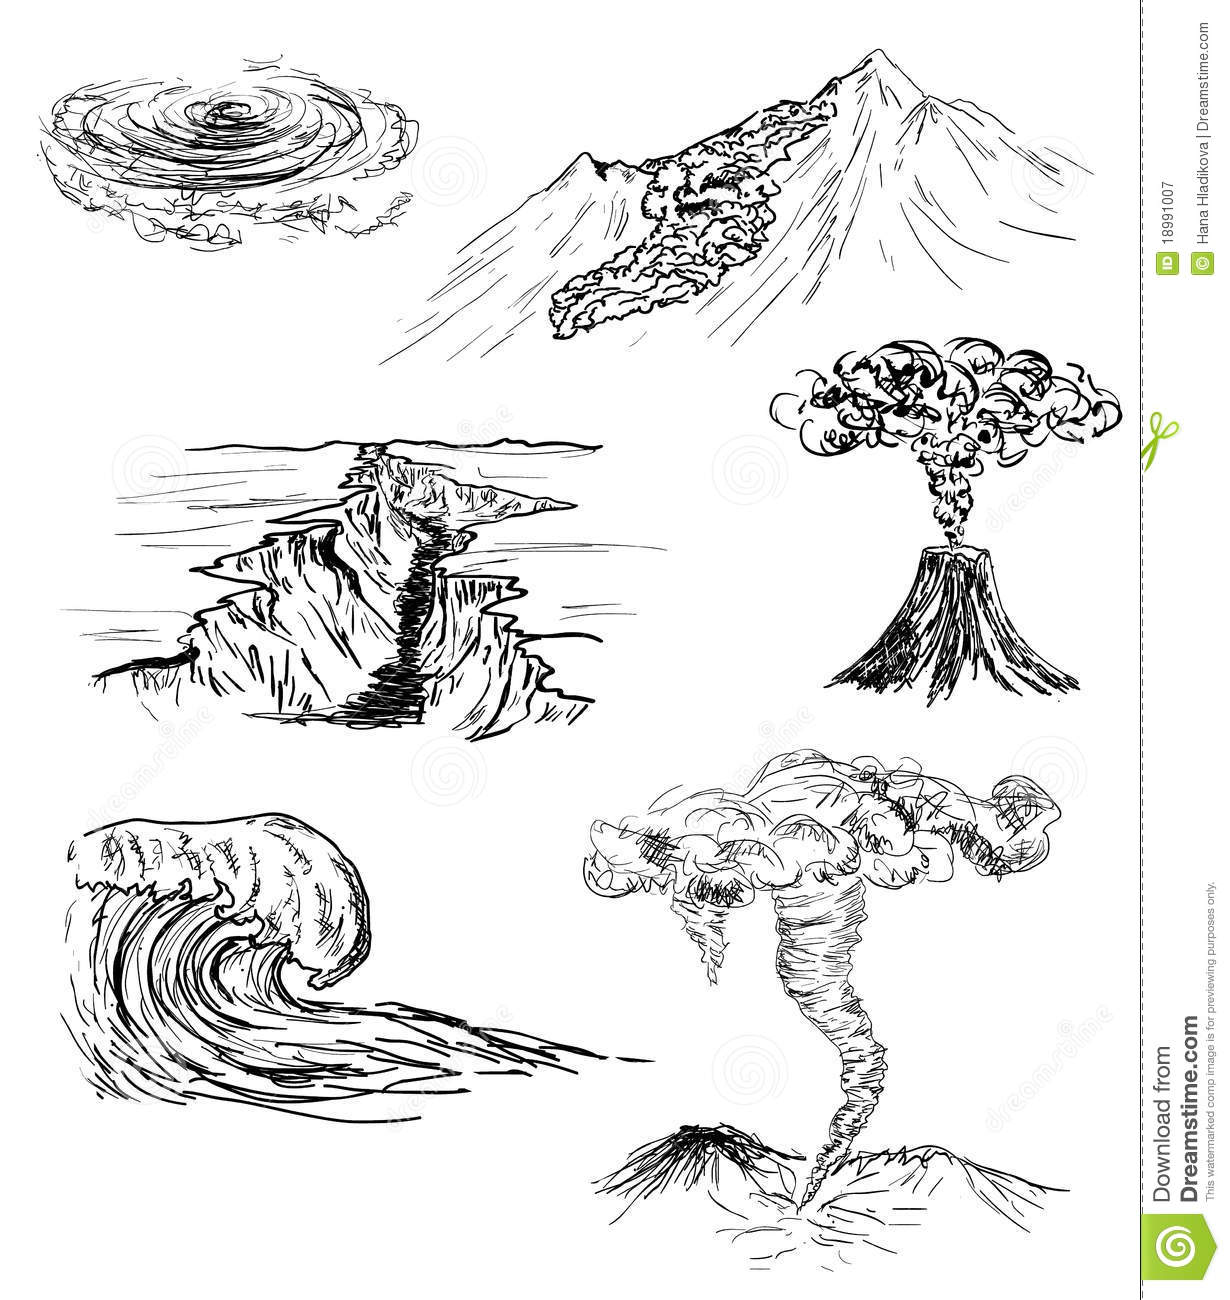 Sketch Of Six Natural Disasters Royalty Free Stock